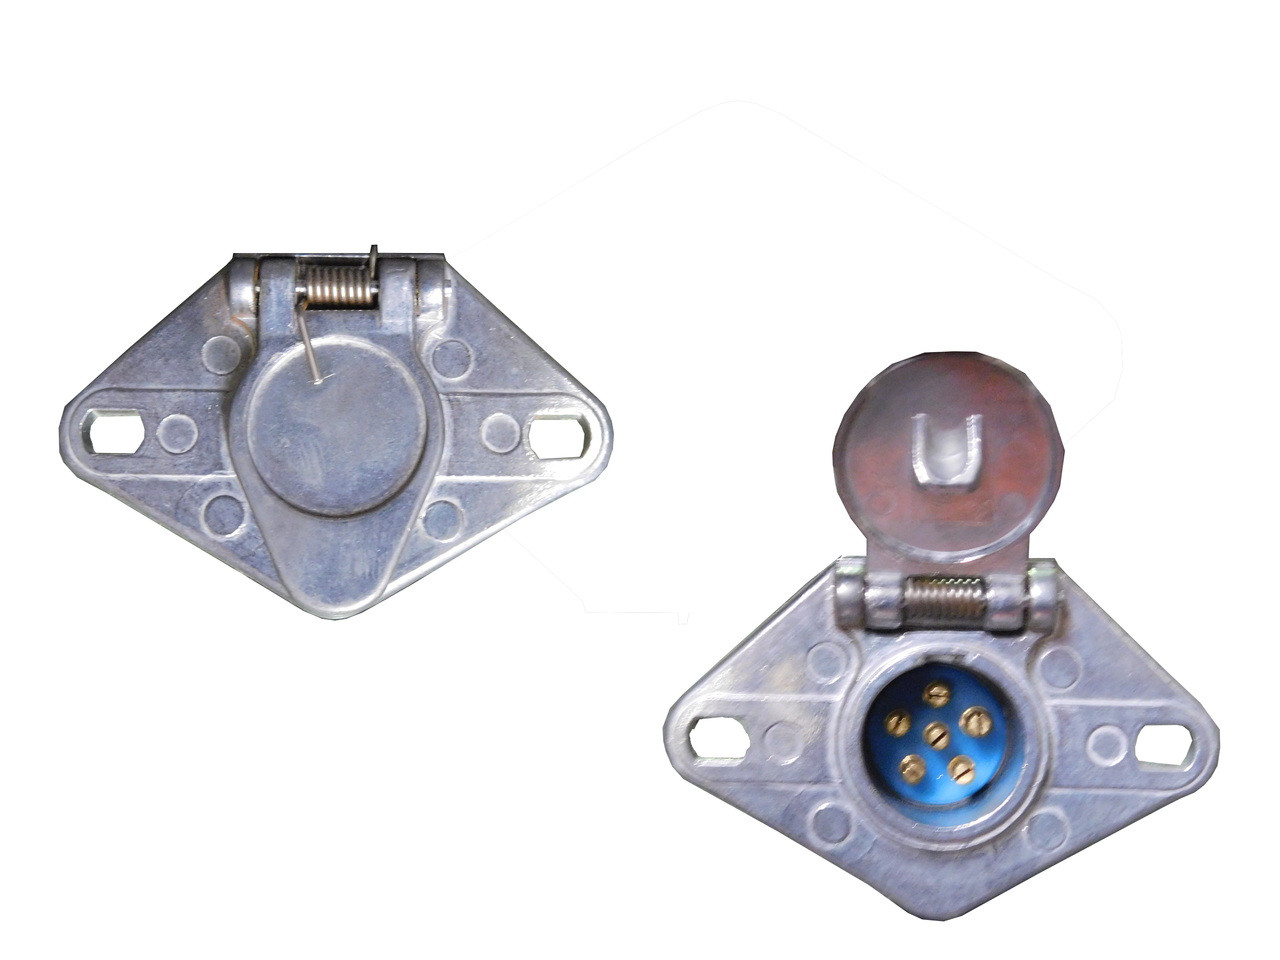 medium resolution of clearance 6 pin round trailer connector female price 8 99 image 1